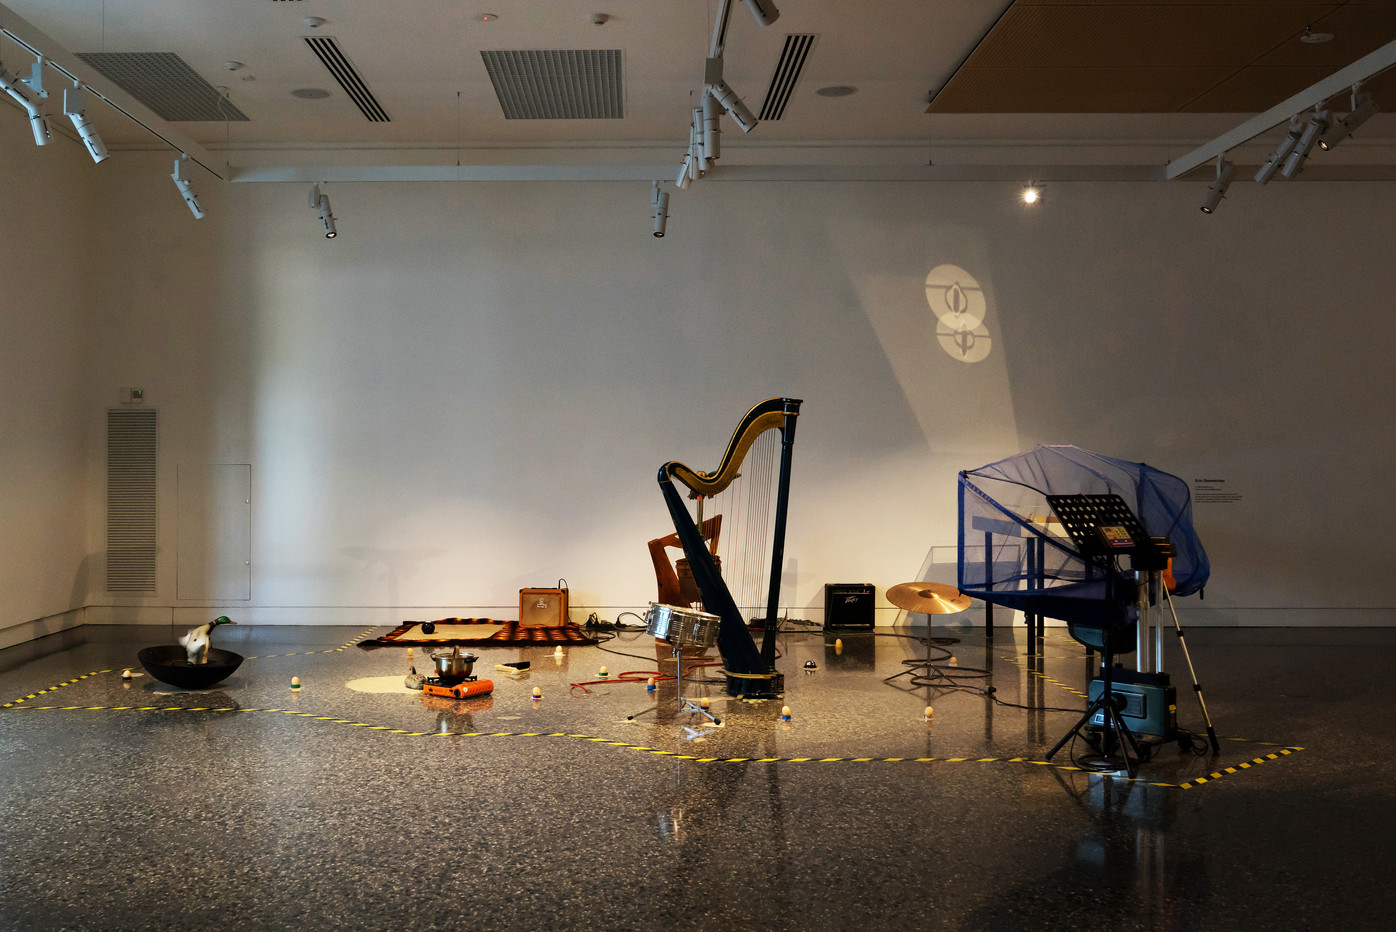 "Herbie Jercher and the Gahan present 4'33"" in cat years & the lost wax stolen river band, 2018, installation view, Murray Art Museum Albury, Photo: Tyler Grace"